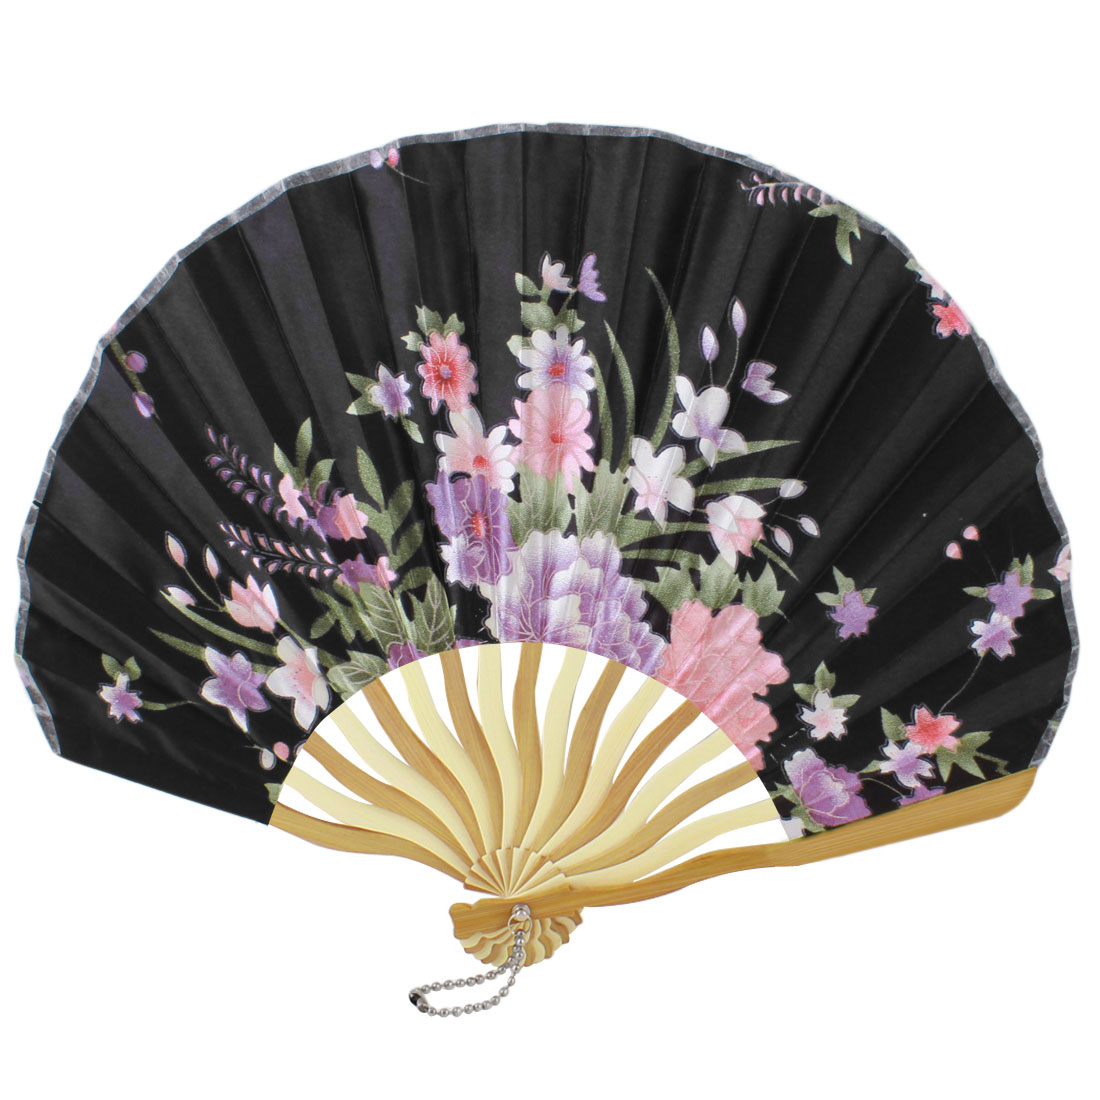 Lady Beige Bamboo Ribs Flower Printed Seashell Shape Folding Hand Fan Black